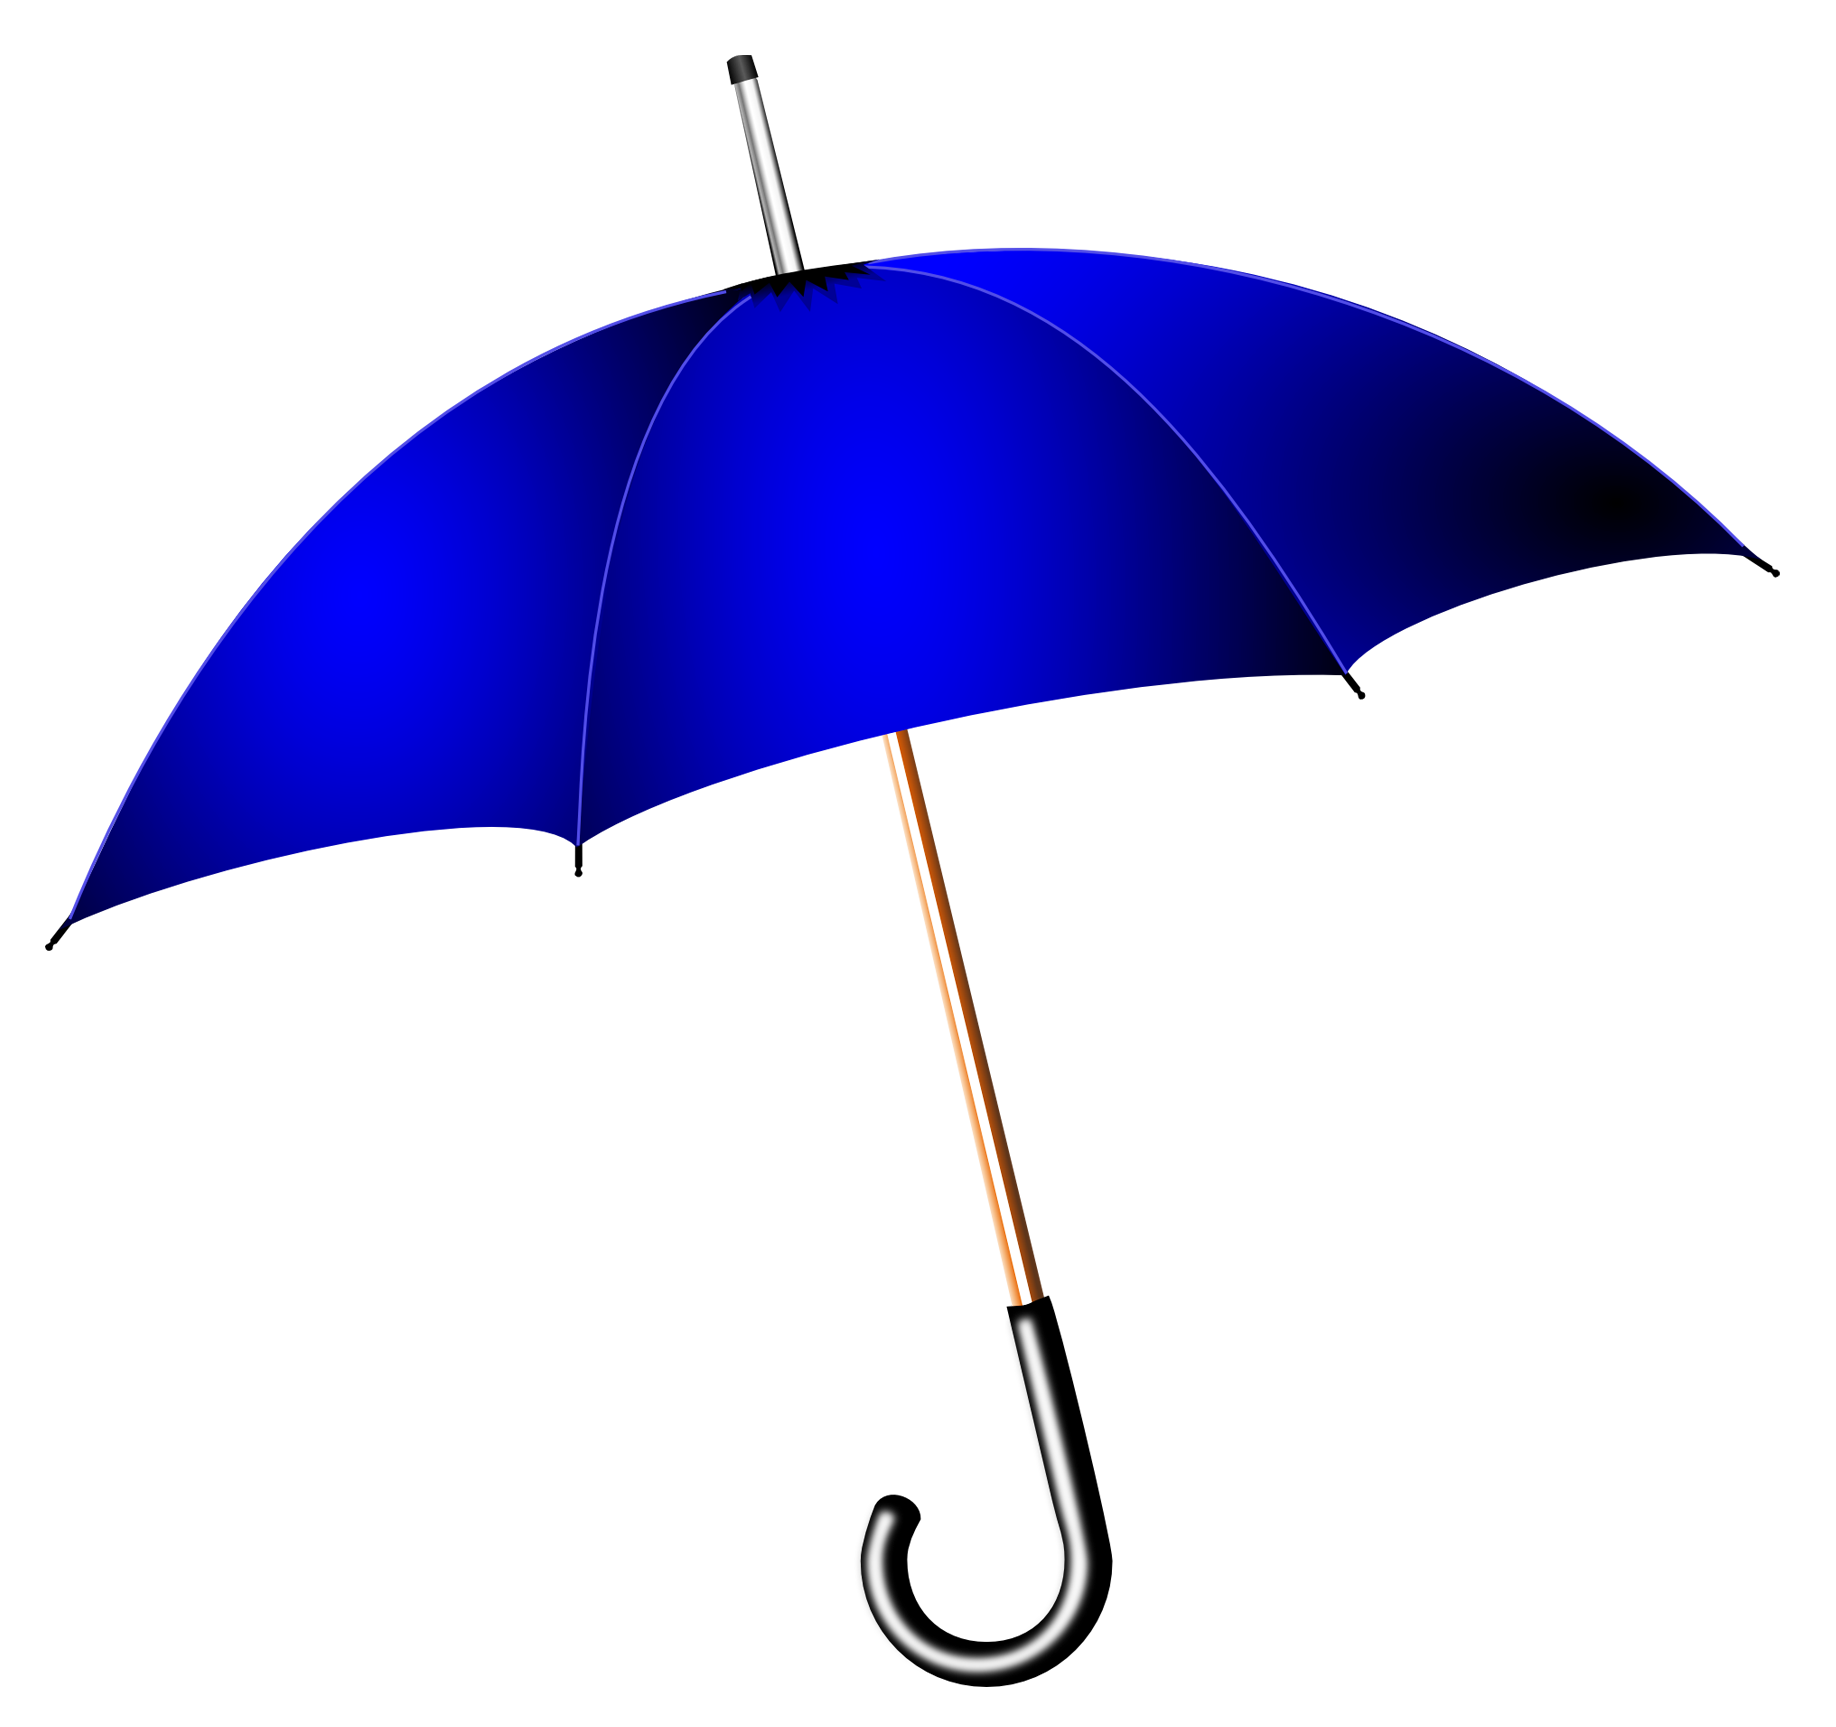 umbrella png transparent image pngpix #18604